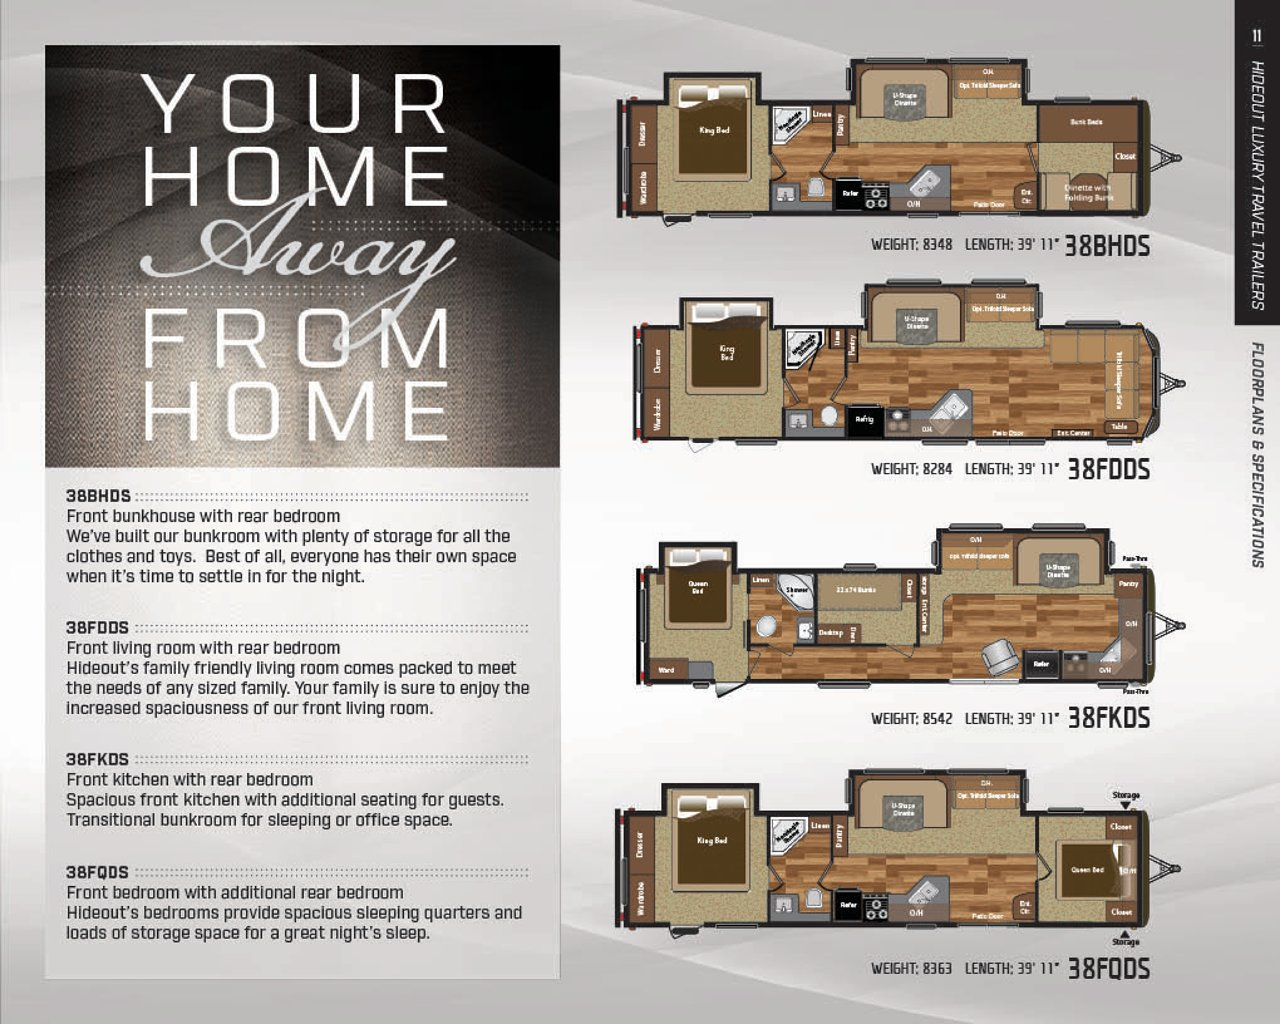 100 Fifth Wheel Floor Plans Front Living Room Fifth Wh.Camper Floor ...